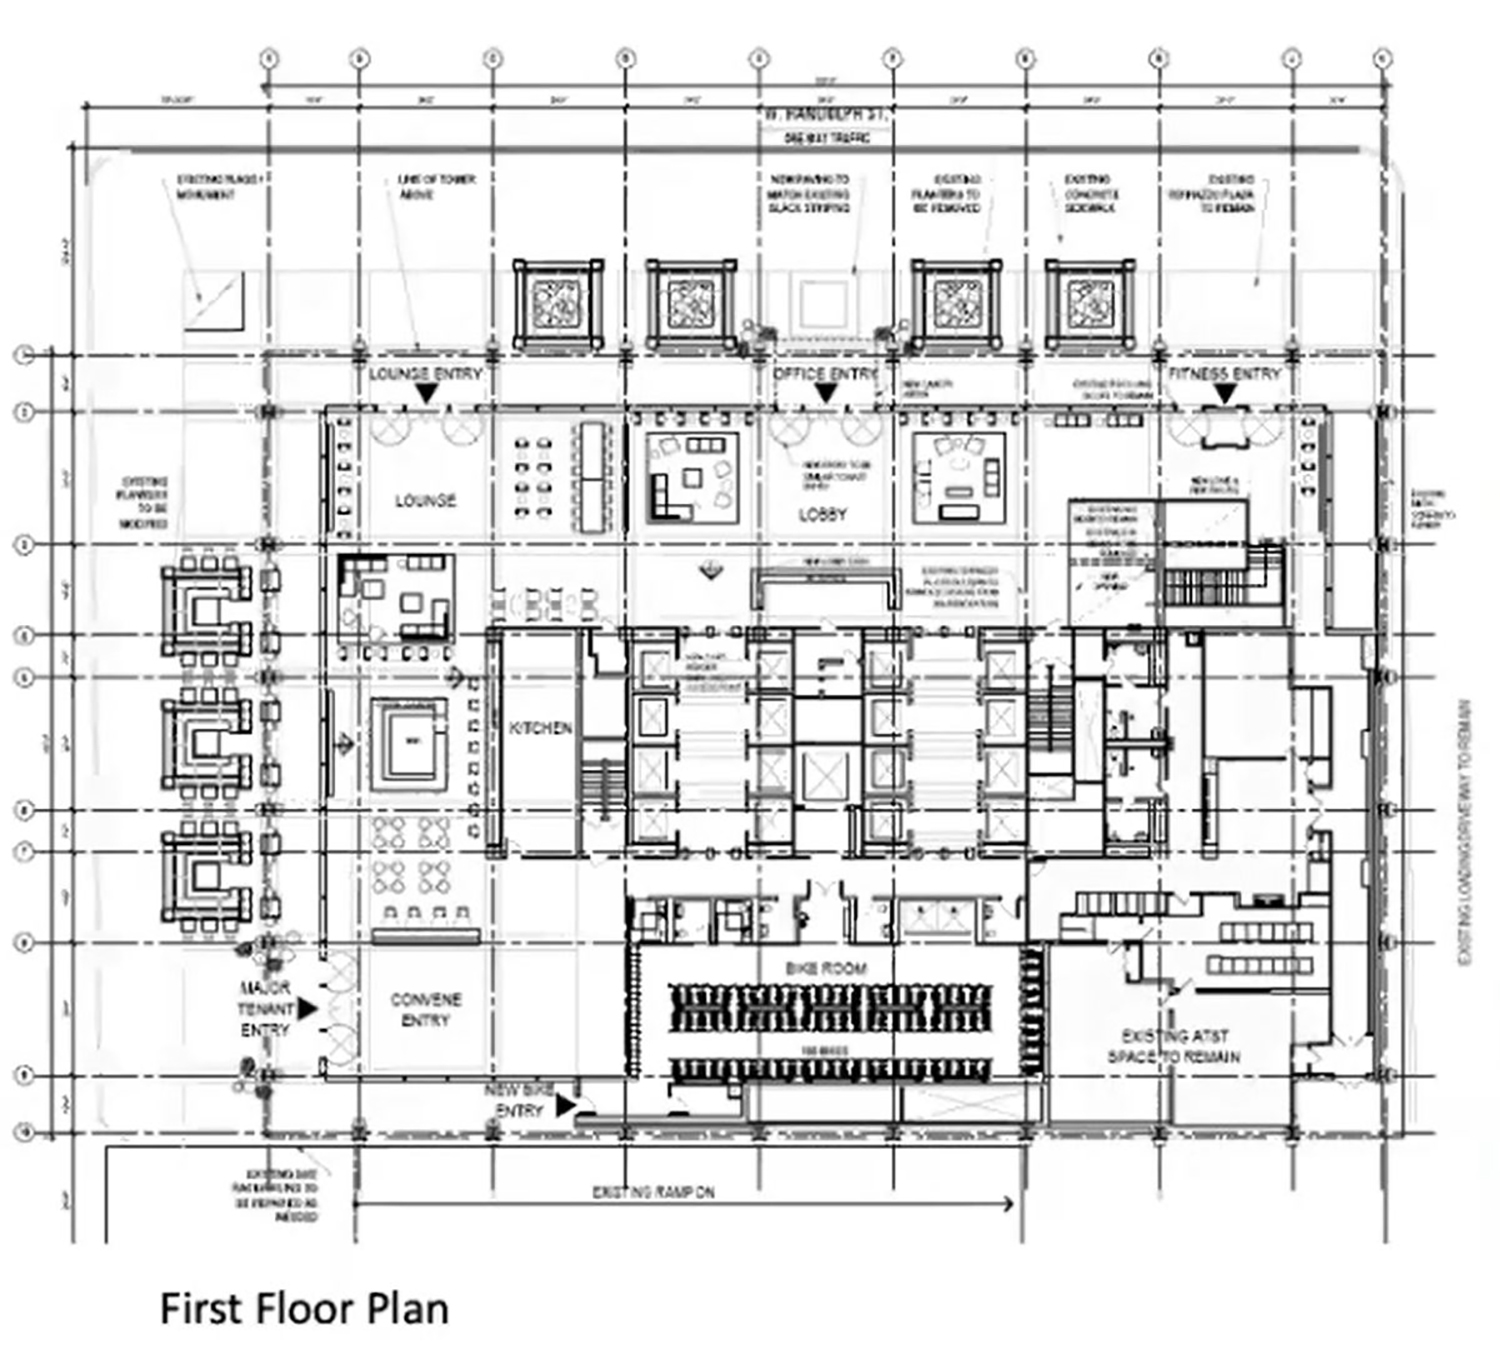 First Floor Plan of Illinois Bell Building. Image by Developer